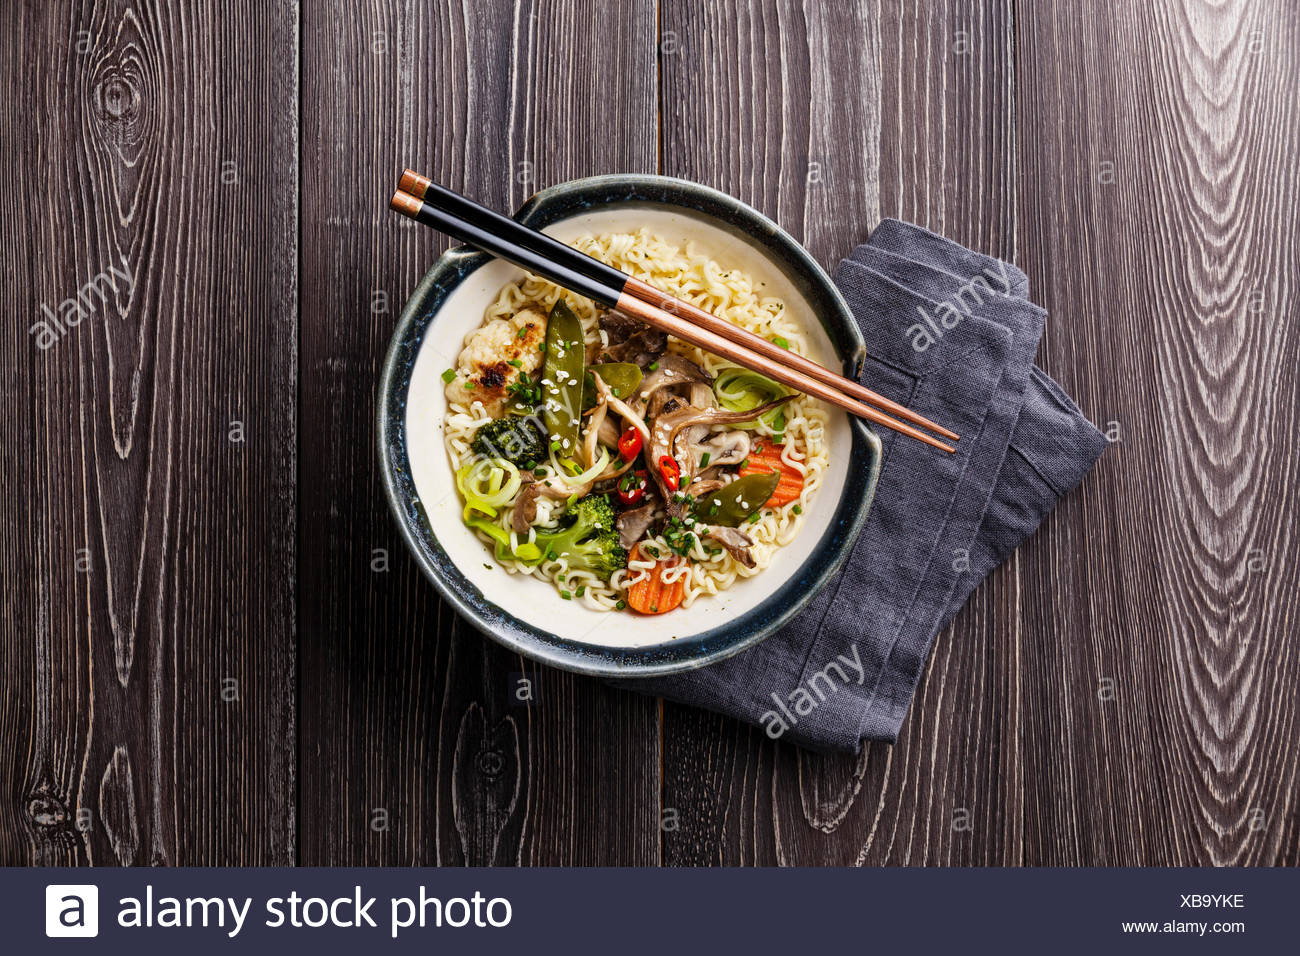 Asian noodles with oyster mushrooms and vegetables in bowl on gray wooden background - Stock Image